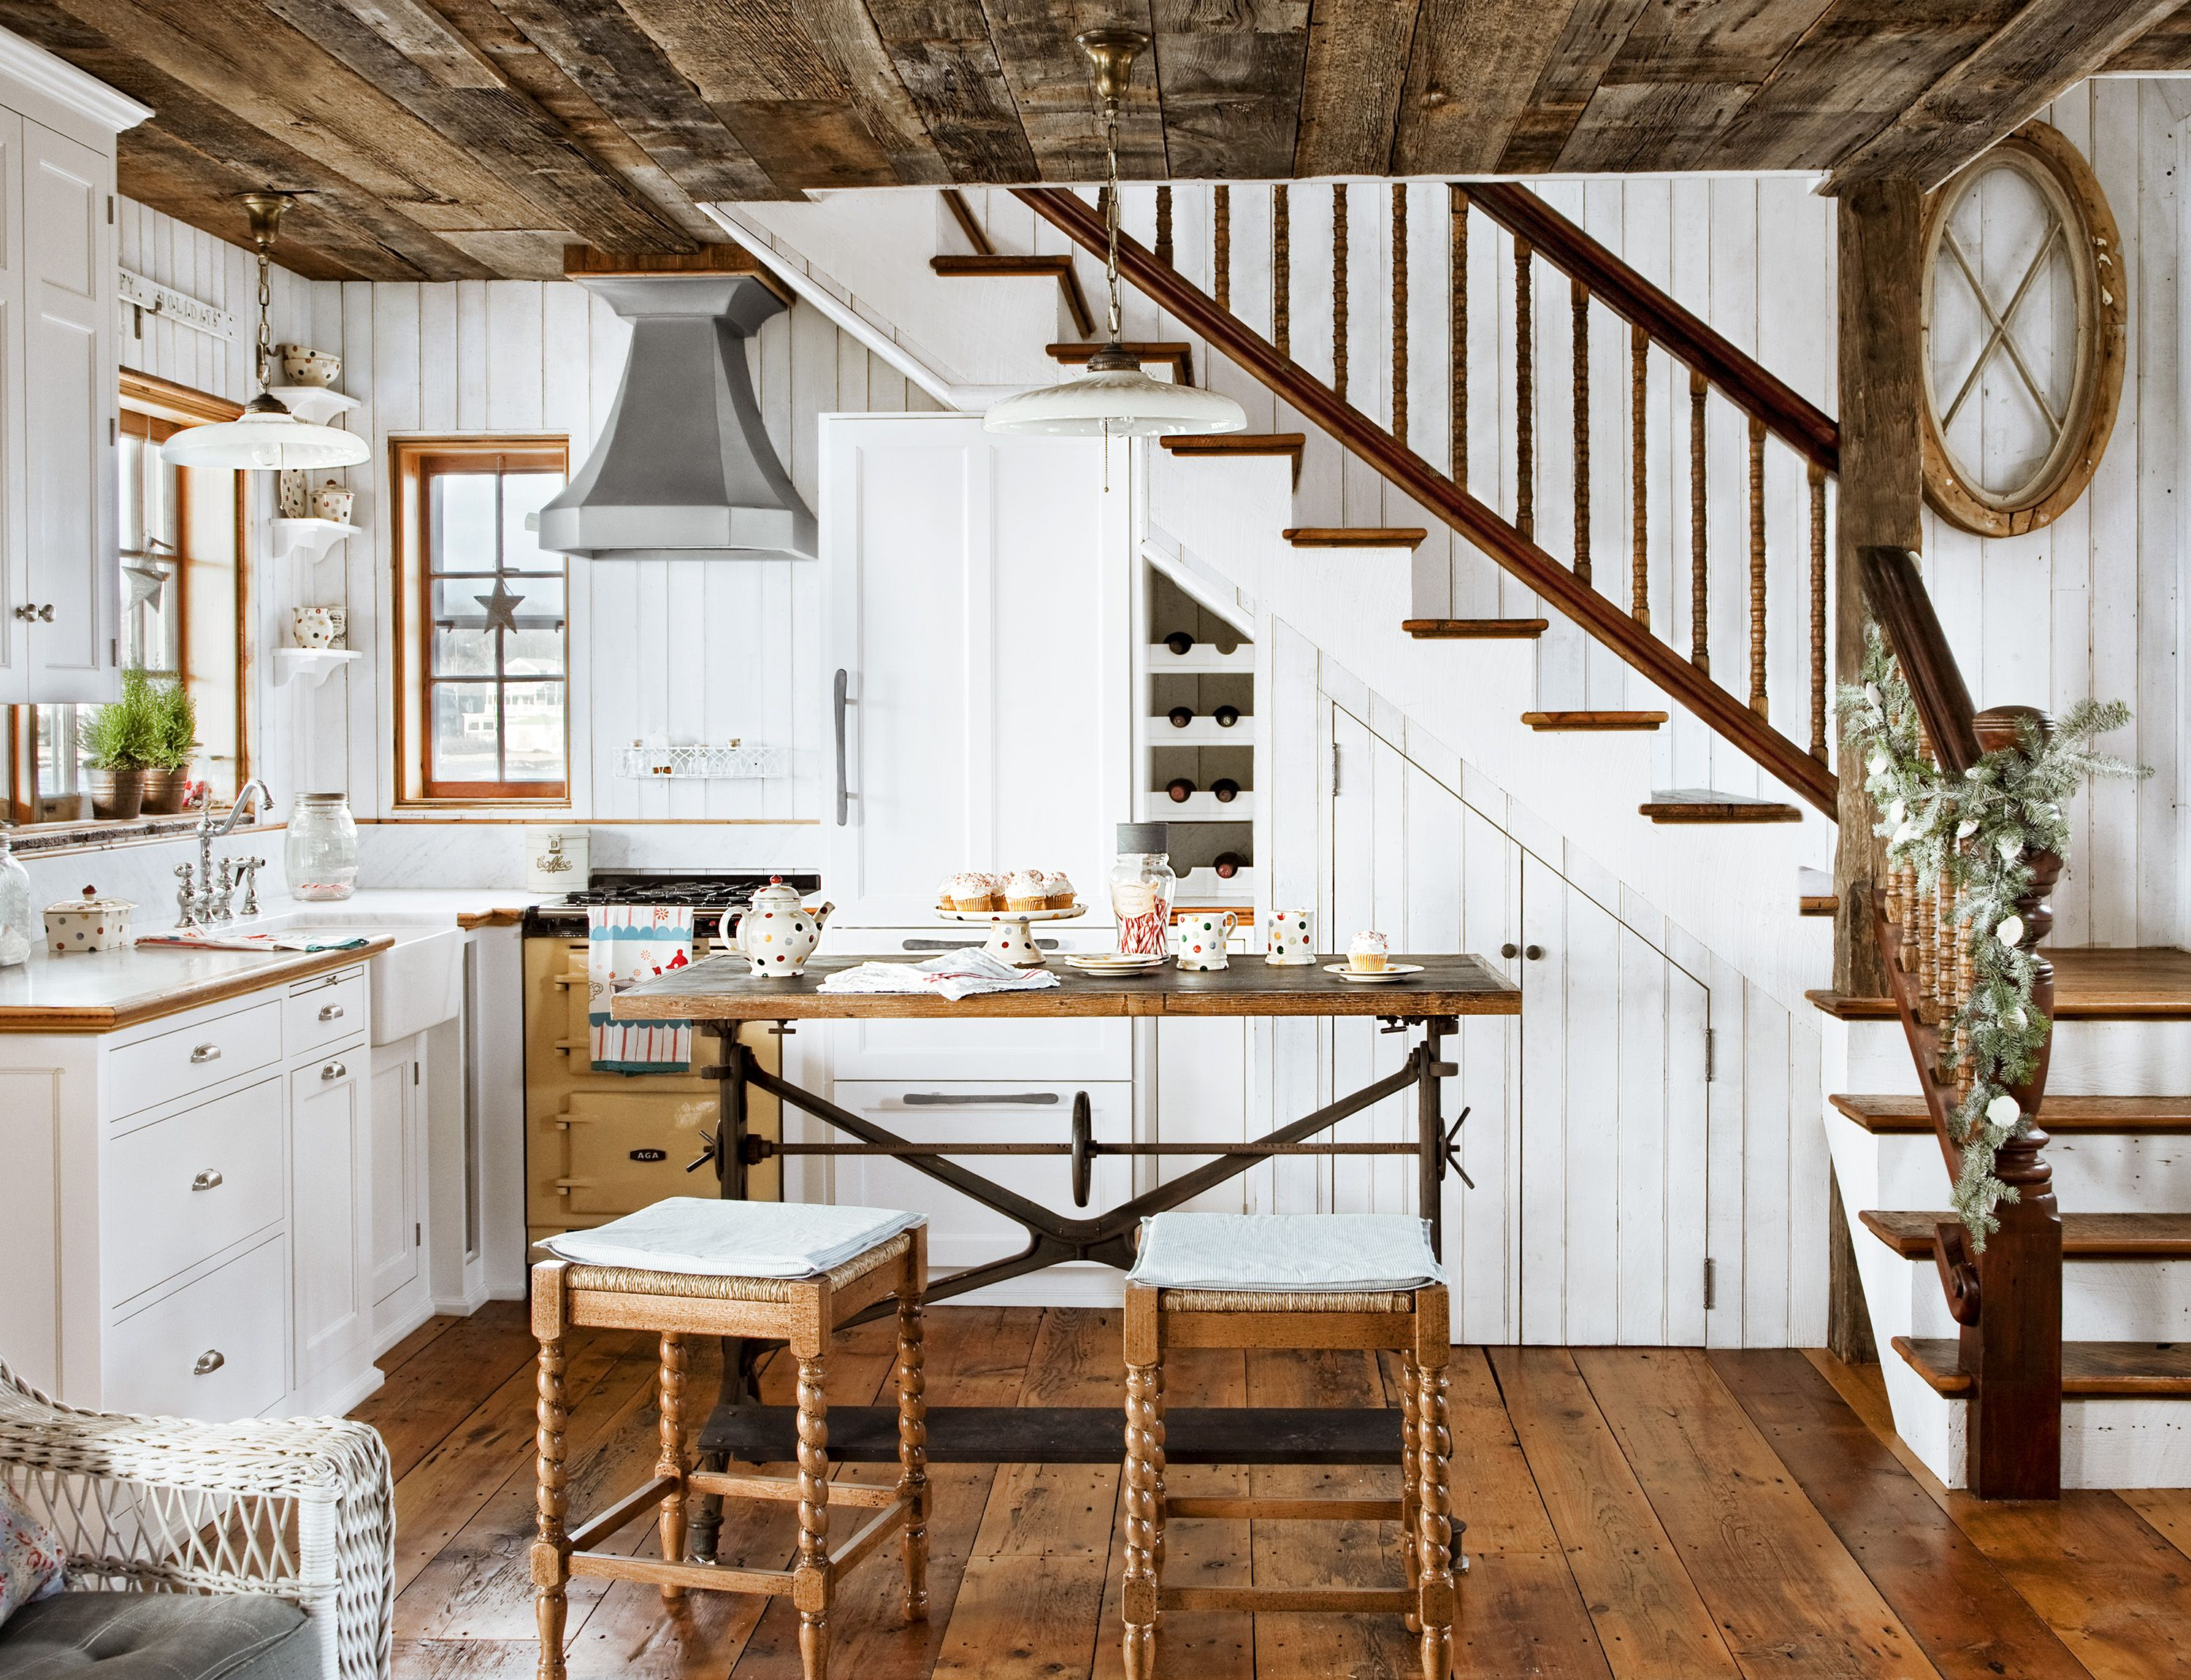 How To Design A Cozy Cottage Style Interior Coastal Cottage Kitchen Country Cottage Kitchen Cottage Kitchen Design